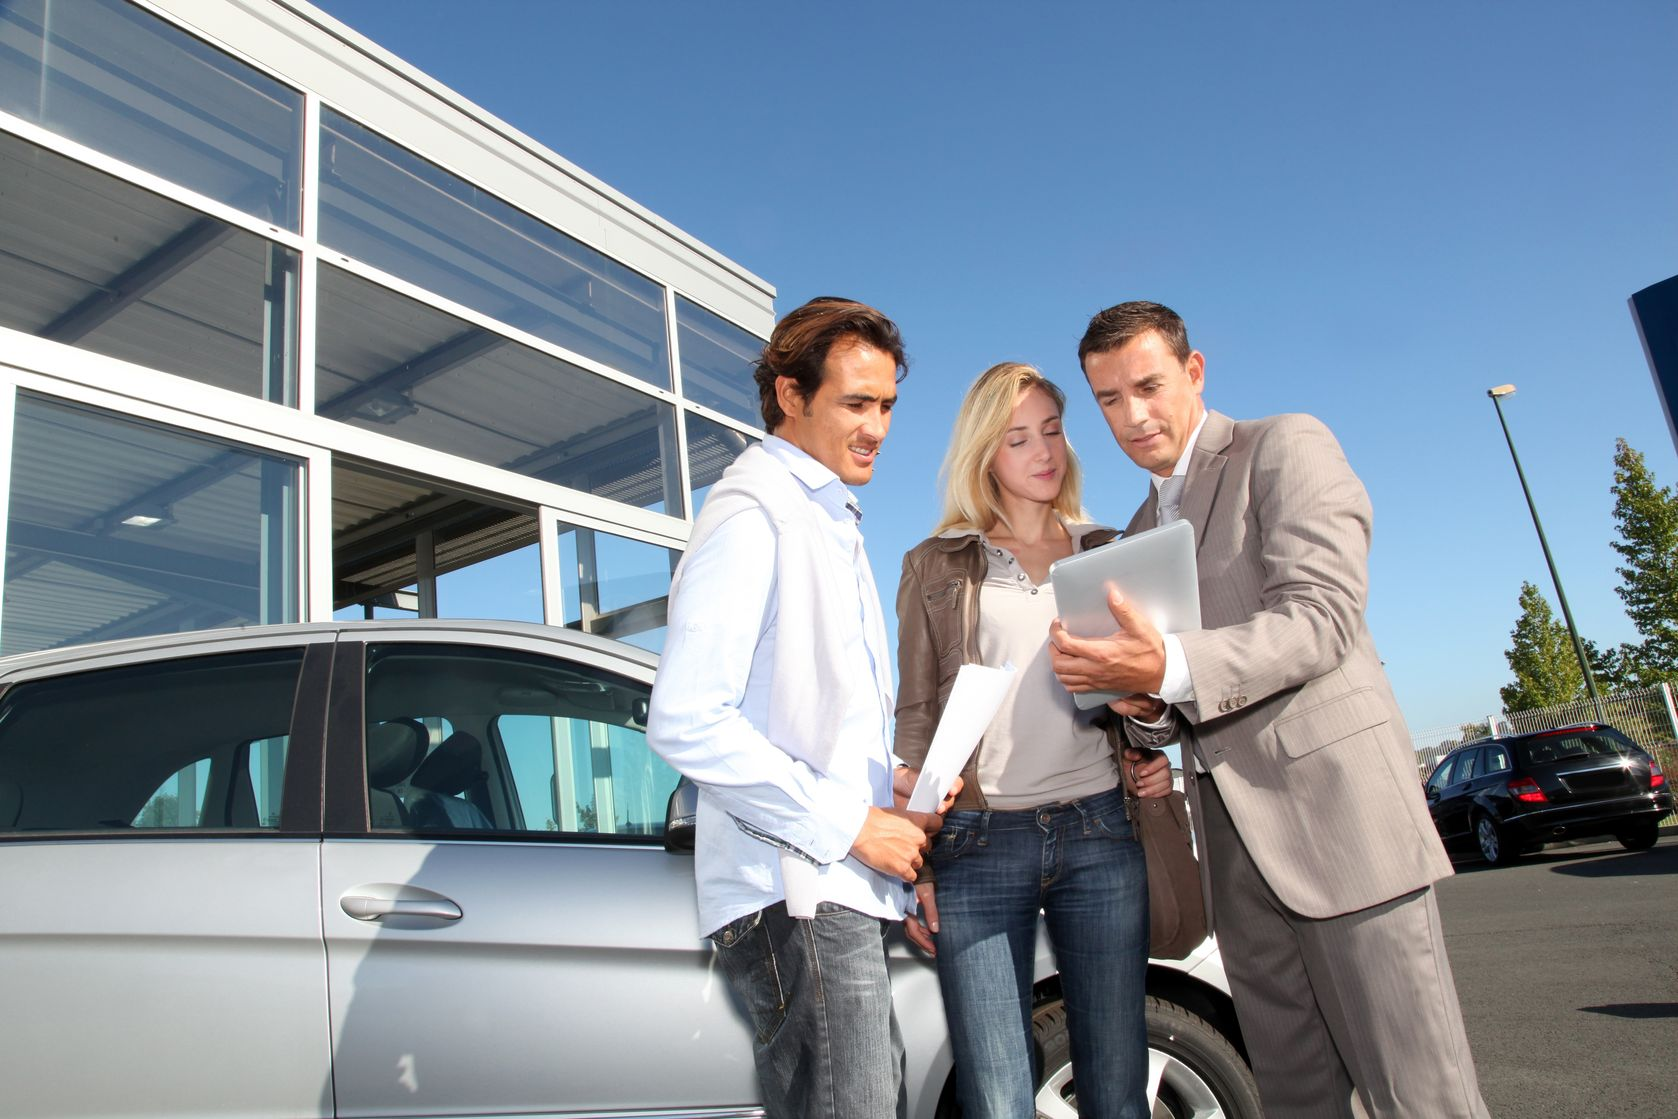 Crossville Auto Dealers Insurance